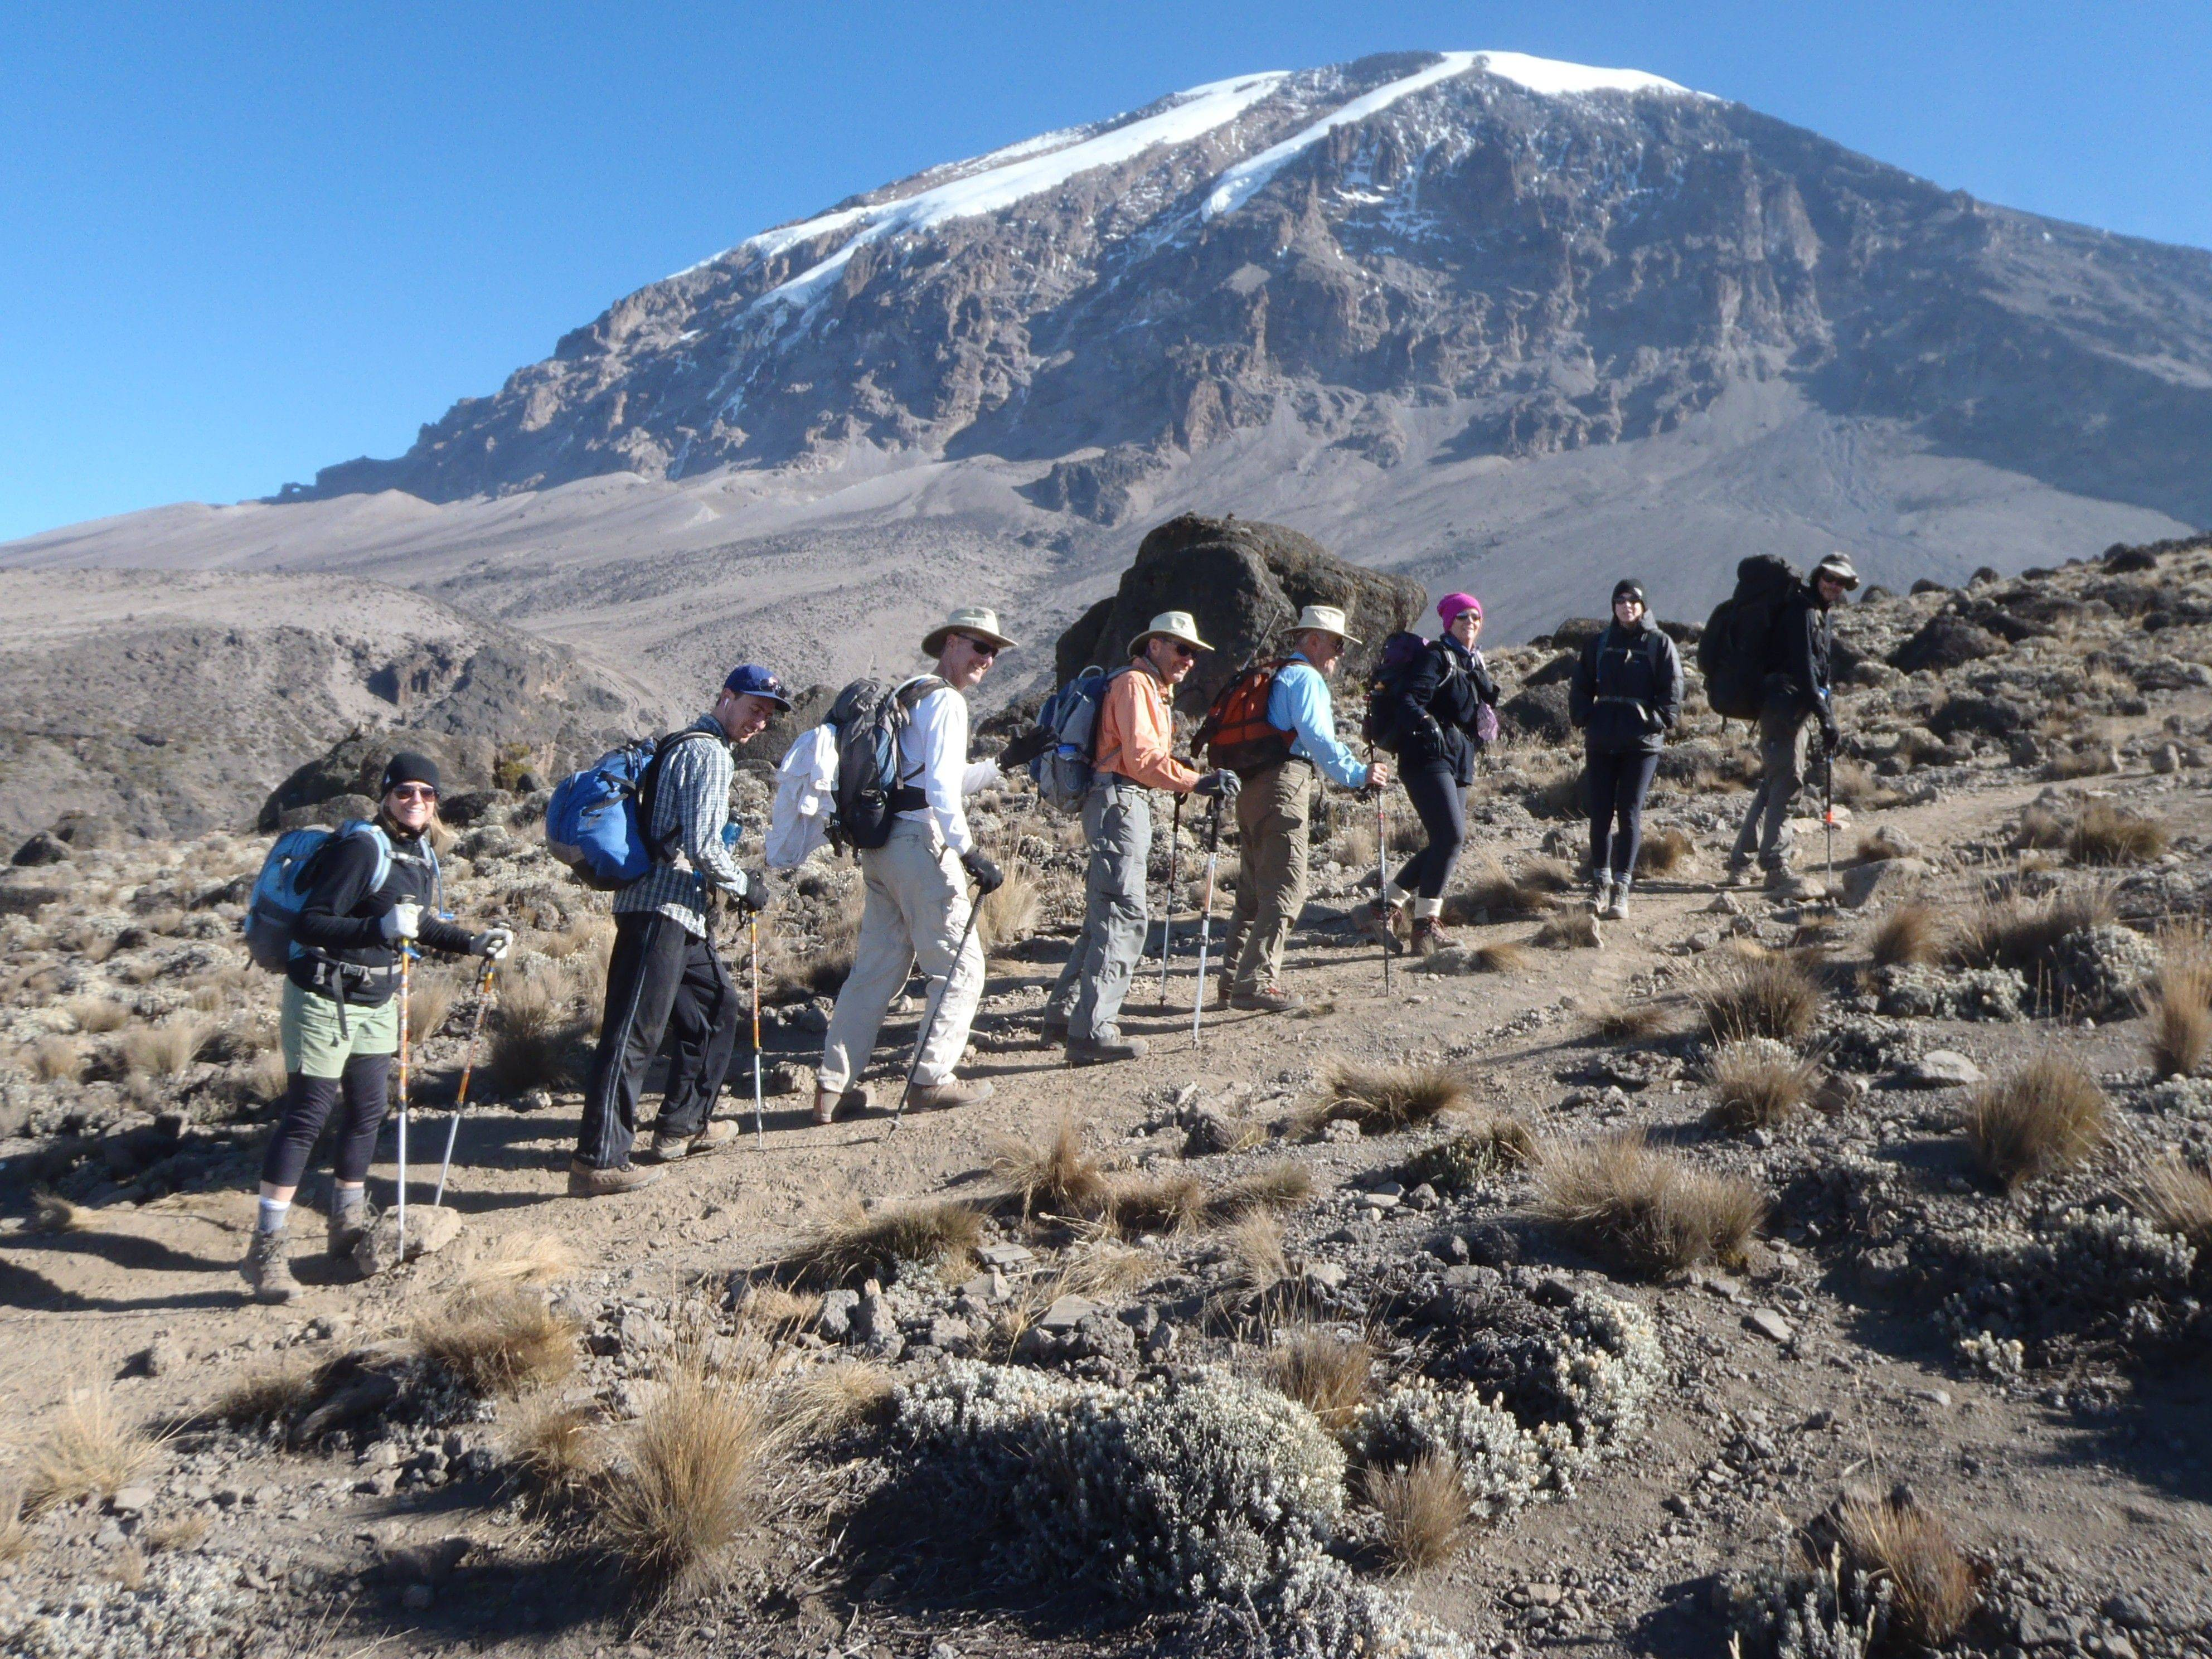 Benet Academy graduate Teri Goudie follows her climbing group up Mount Kilimanjaro in Tanzania. The experience will be part of her presentation to the school's upcoming Mother Daughter Luncheon.